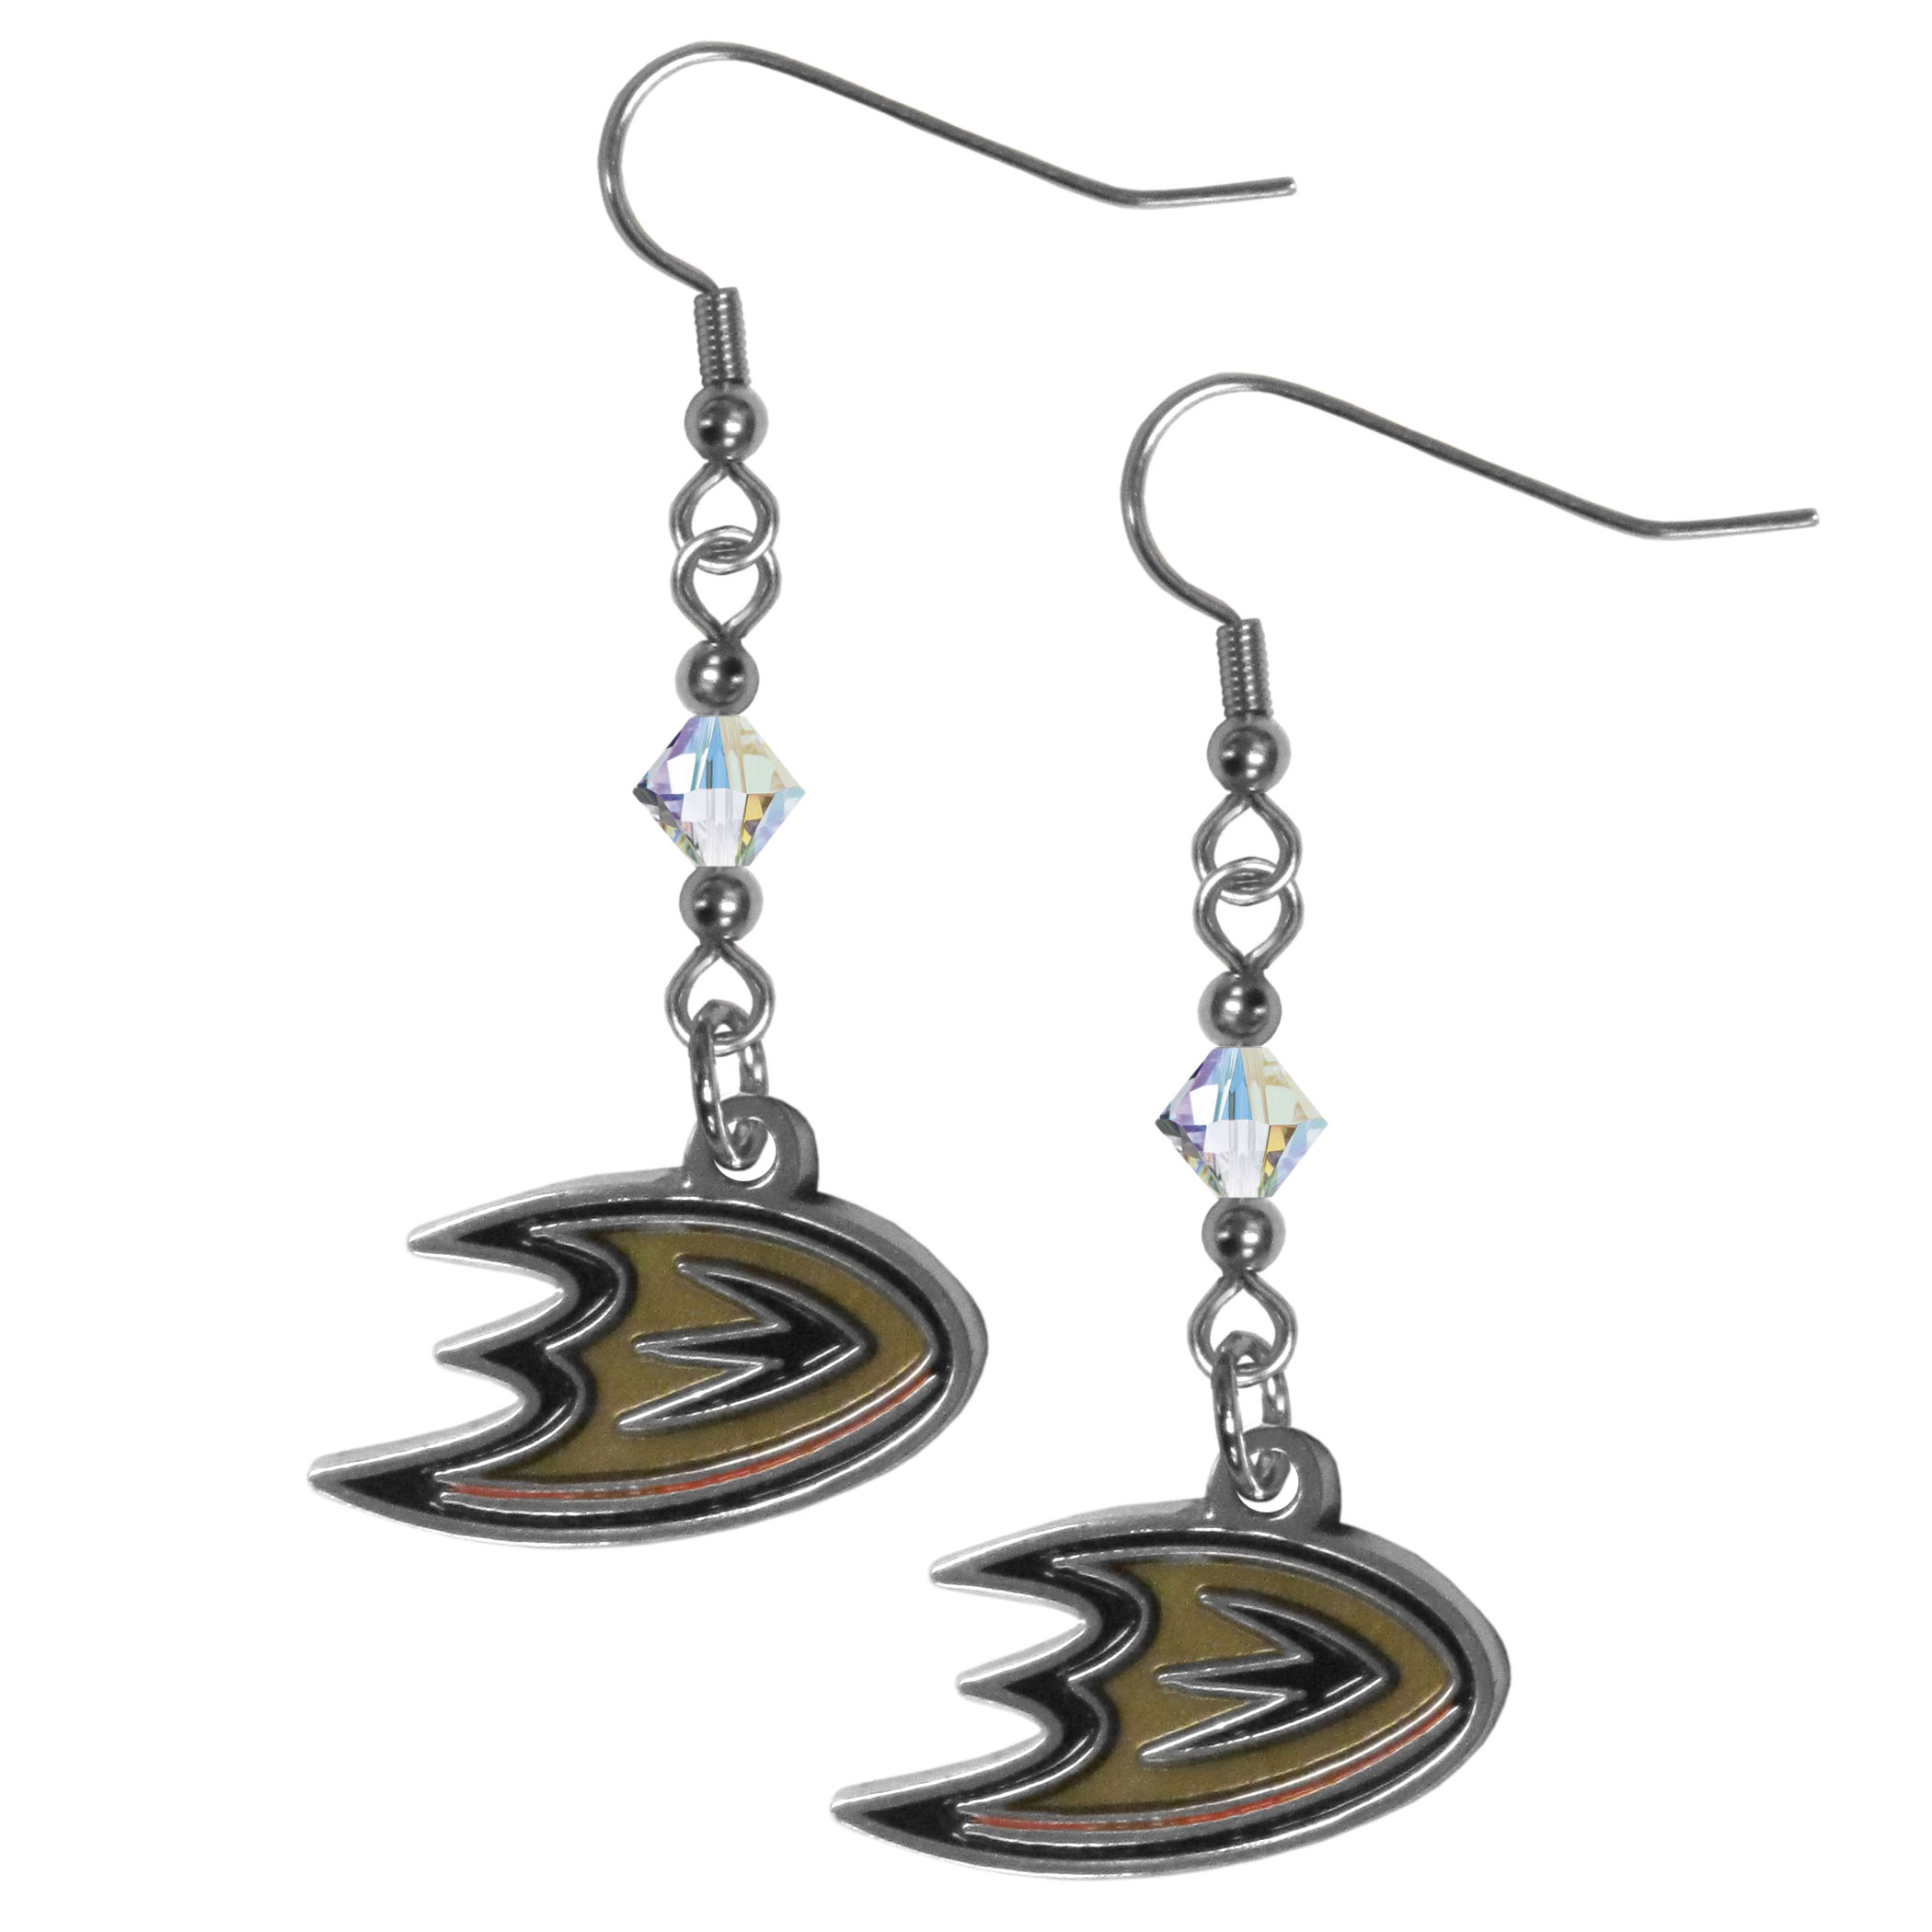 Anaheim Ducks® Crystal Dangle Earrings - Our crystal dangle earrings are the perfect accessory for your game day outfit! The earrings are approximately 1.5 inches long and feature an iridescent crystal bead and nickel free chrome Anaheim Ducks® charm on nickel free, hypoallergenic fishhook posts.